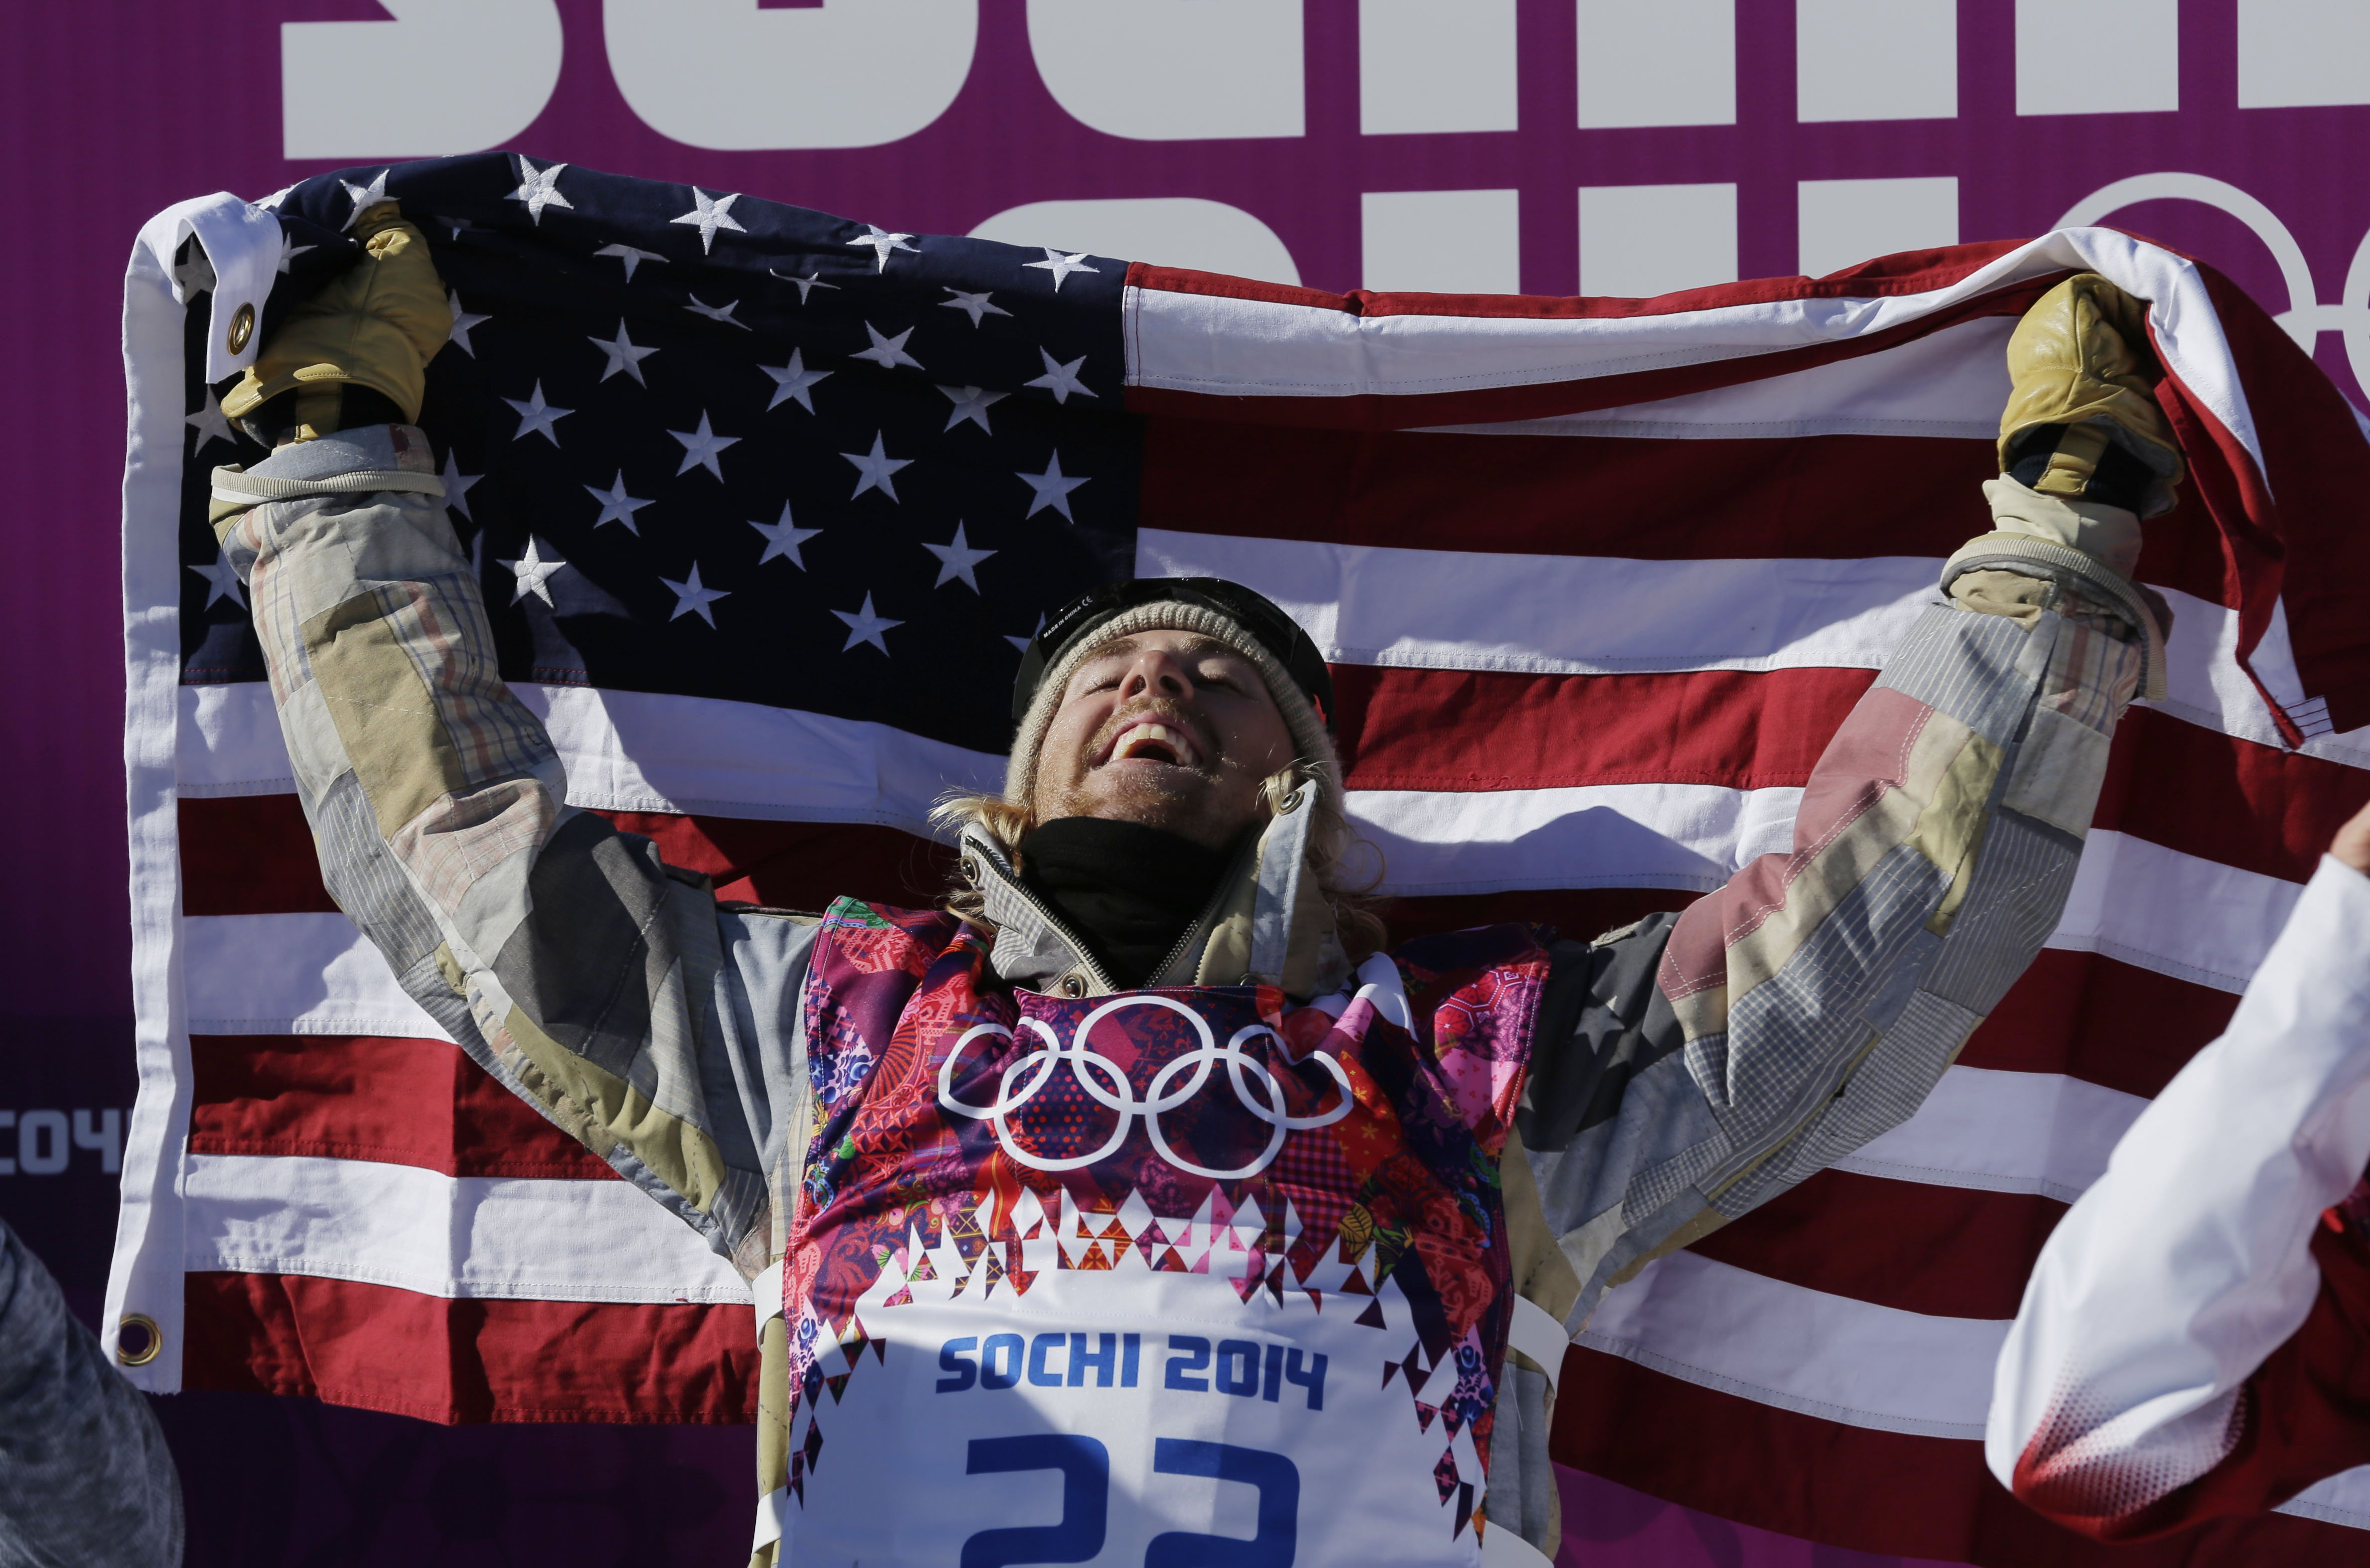 U.S. snowboarder Sage Kotsenburg celebrates Saturday after winning the men's slopestyle final in Krasnaya Polyana, Russia, becoming the first gold medalist of the Games.